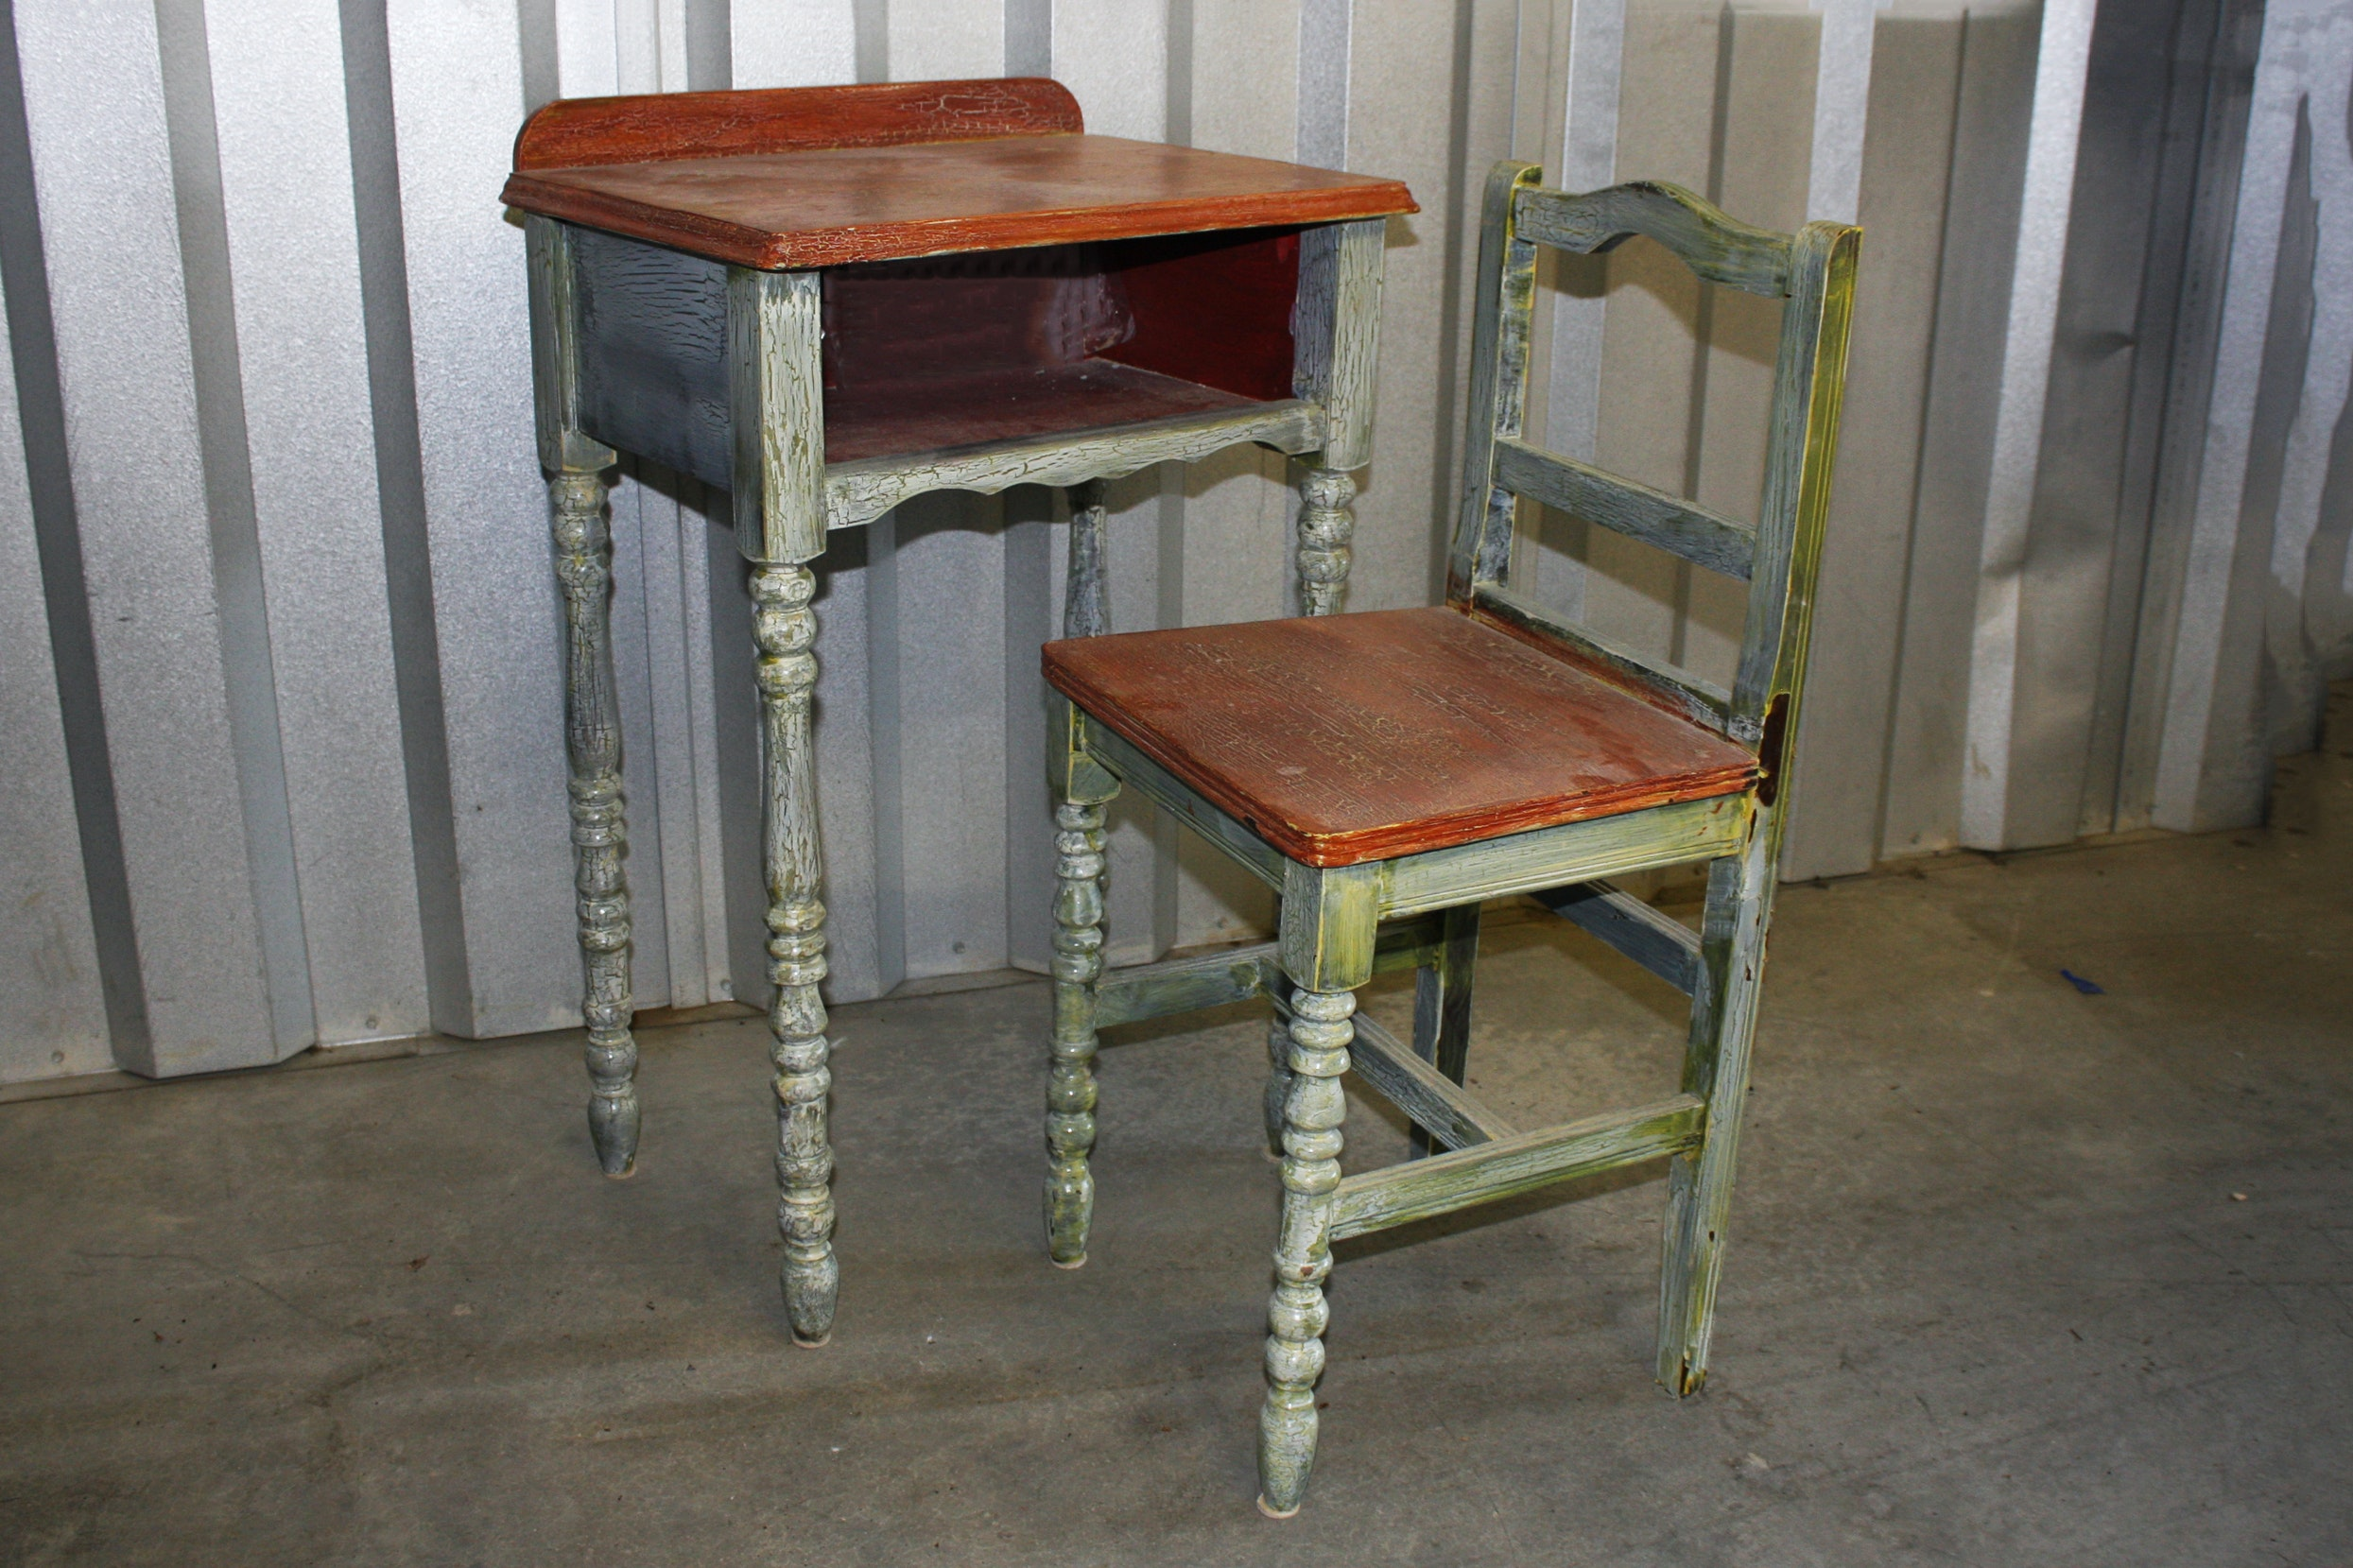 Vintage Painted Telephone Table and Chair